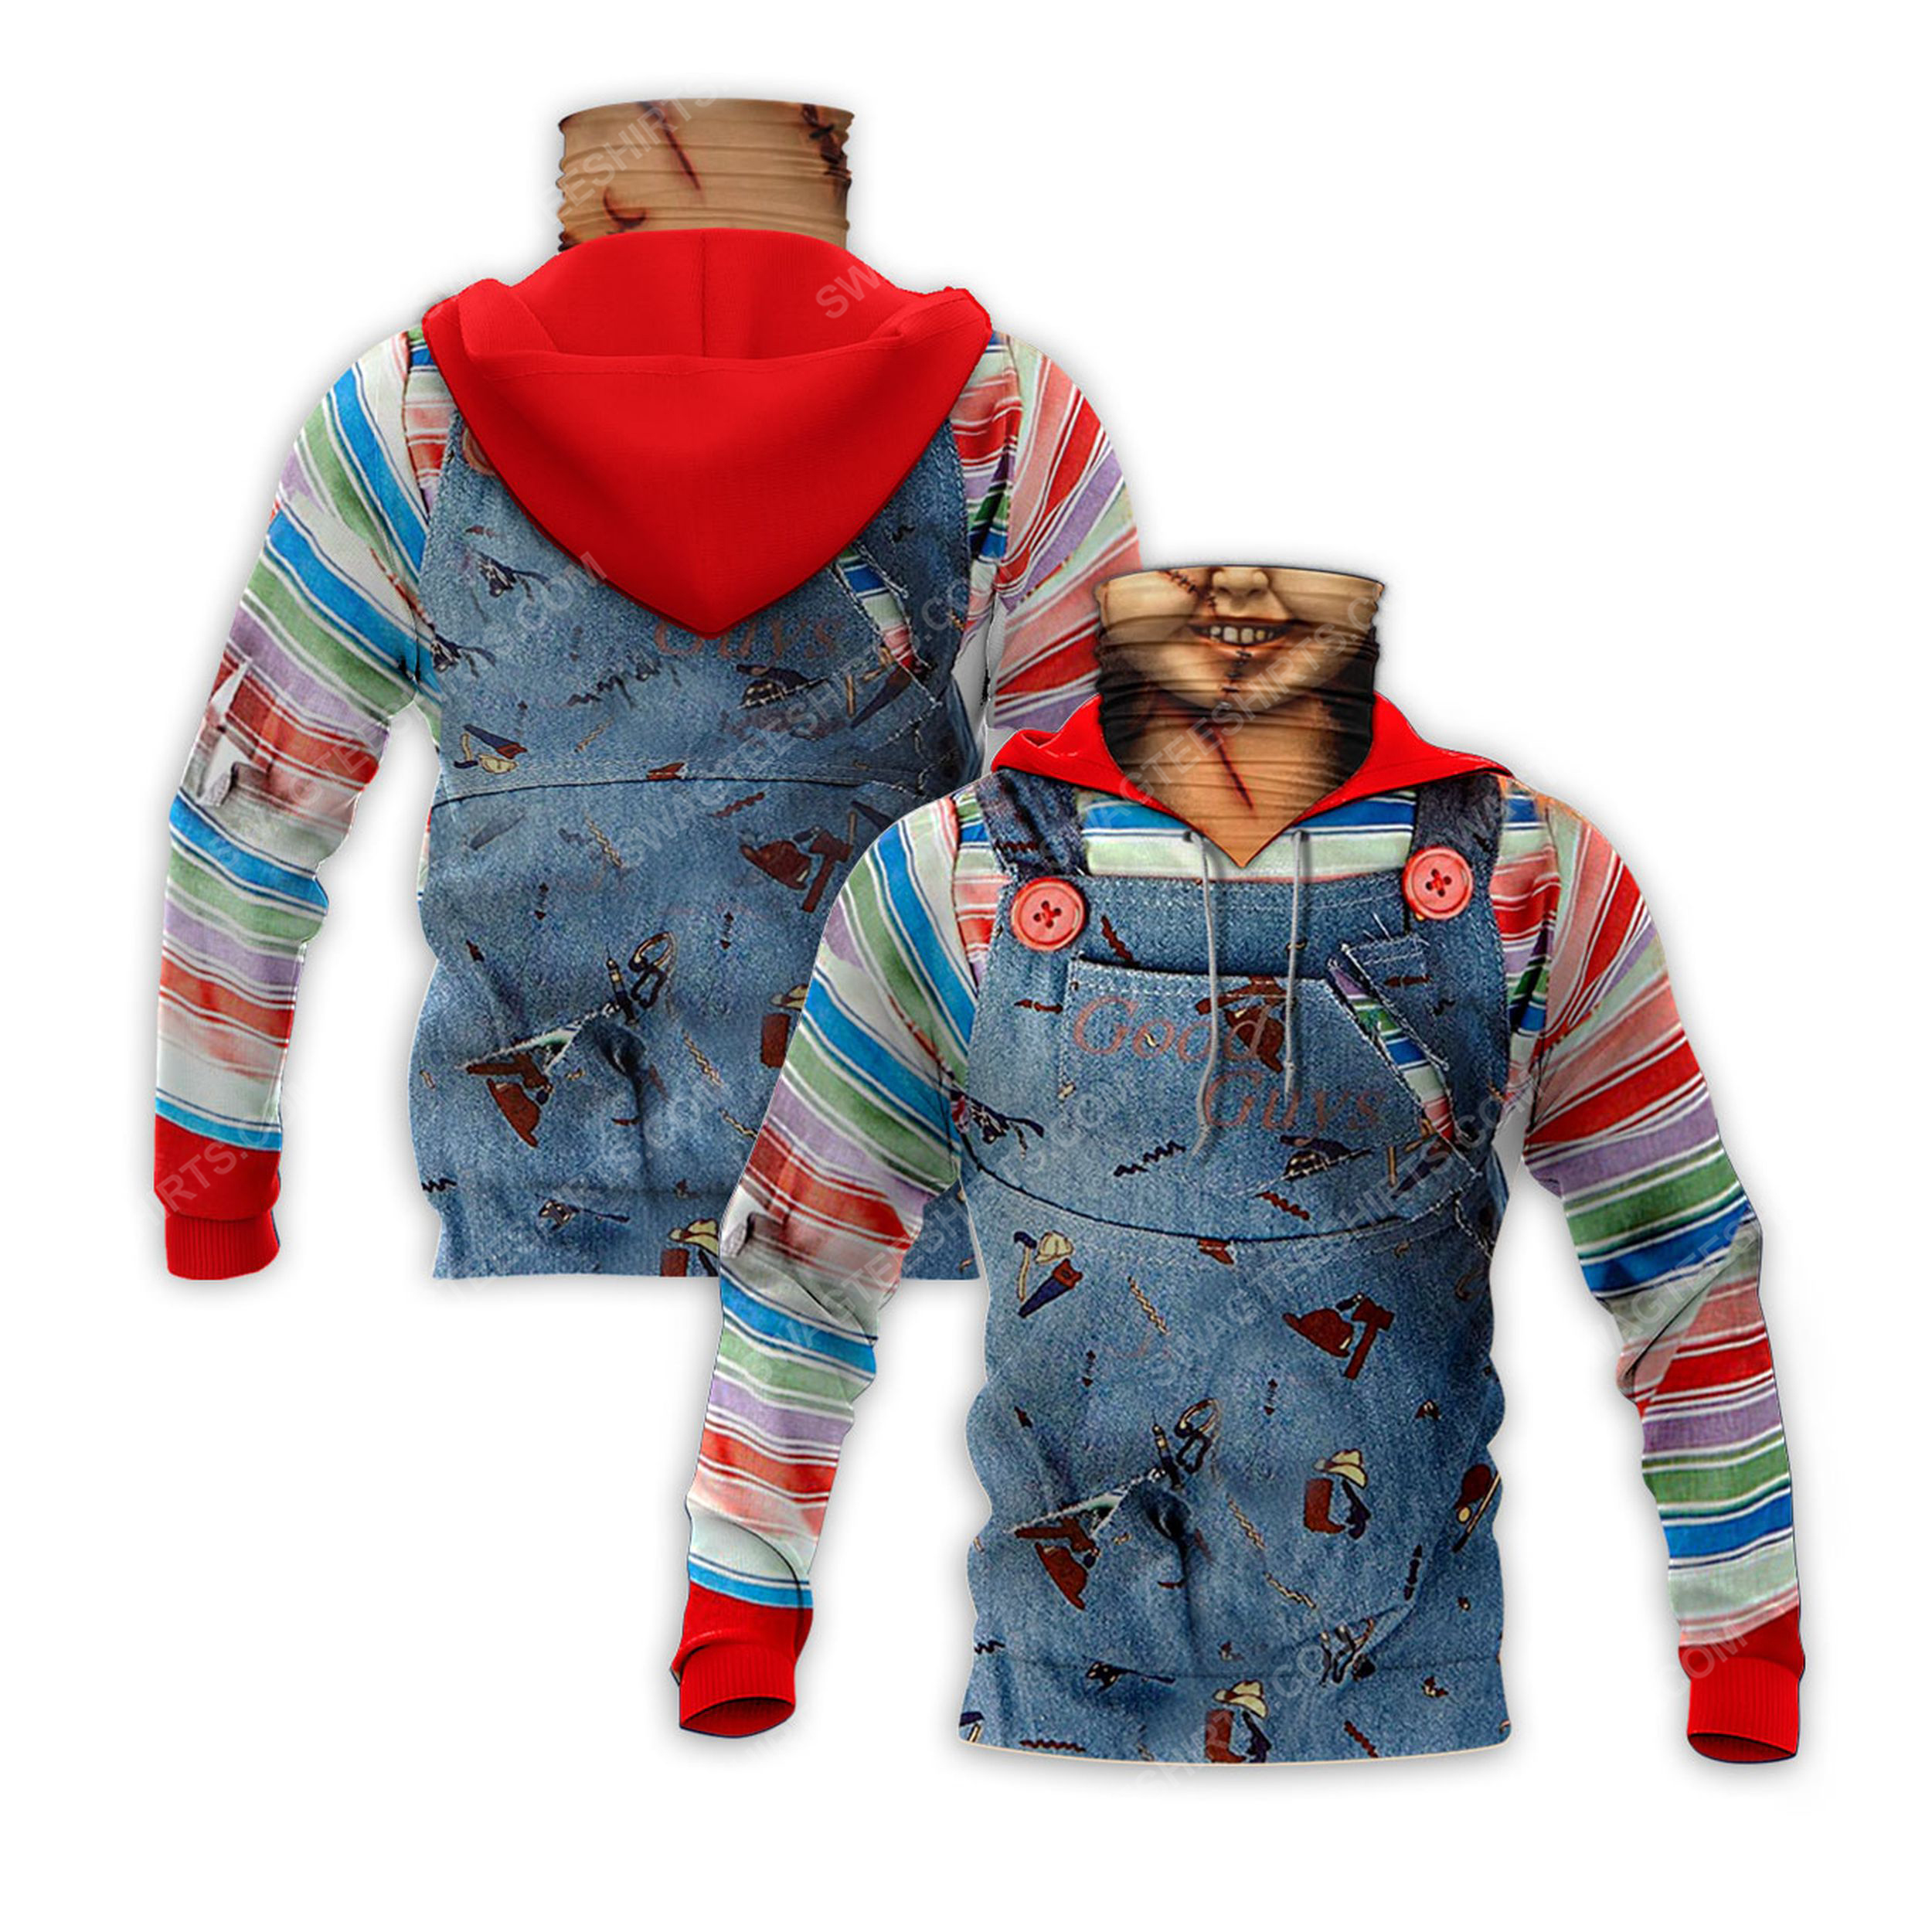 Chucky child's play for halloween full print mask hoodie 2(1) - Copy